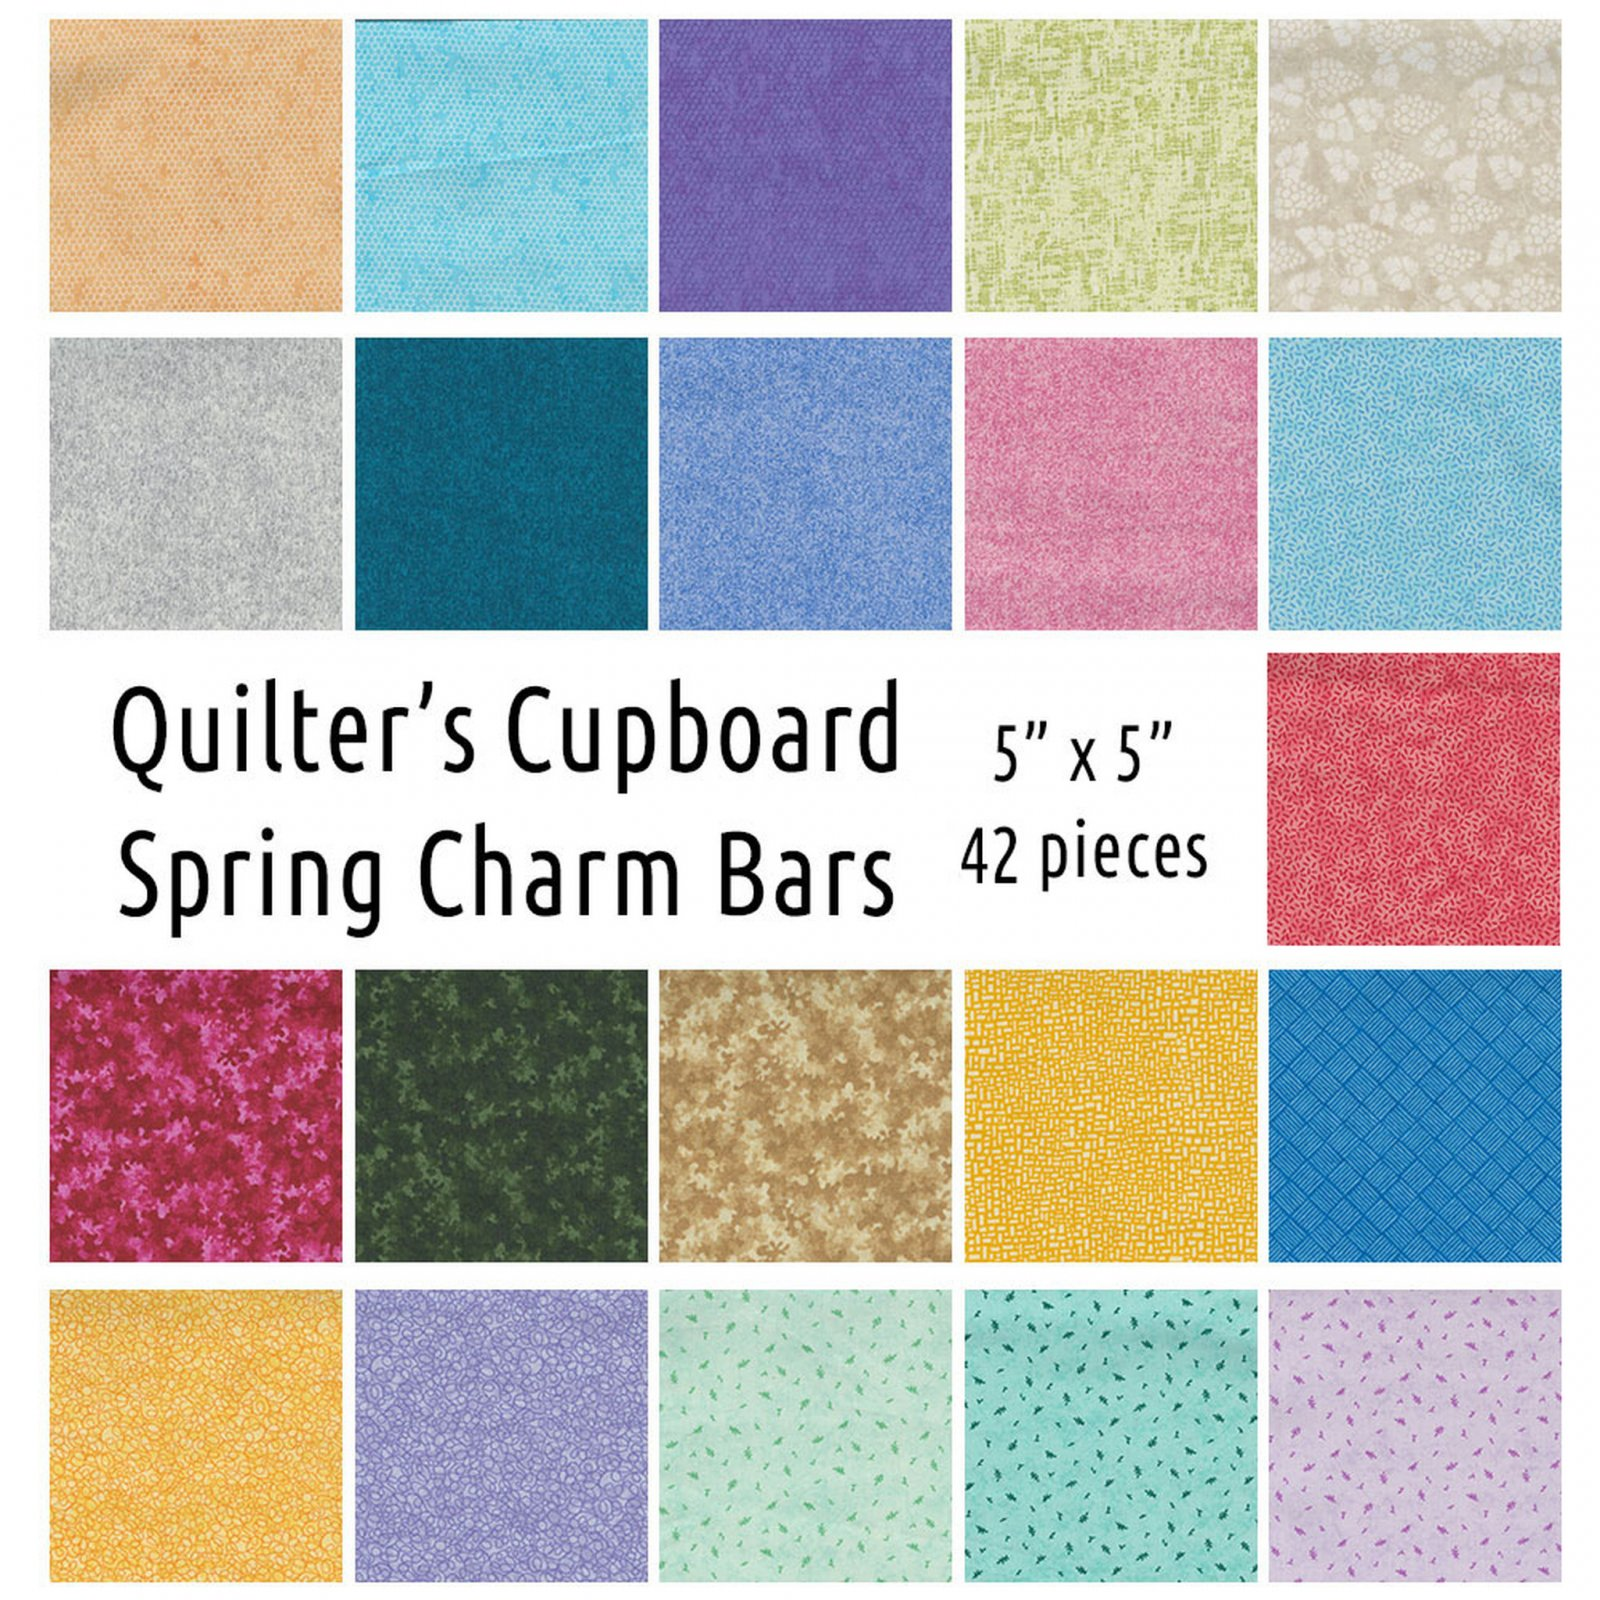 Quilter's Cupboard Spring Charm Bars 5 X 5  42 Pieces River's Bend